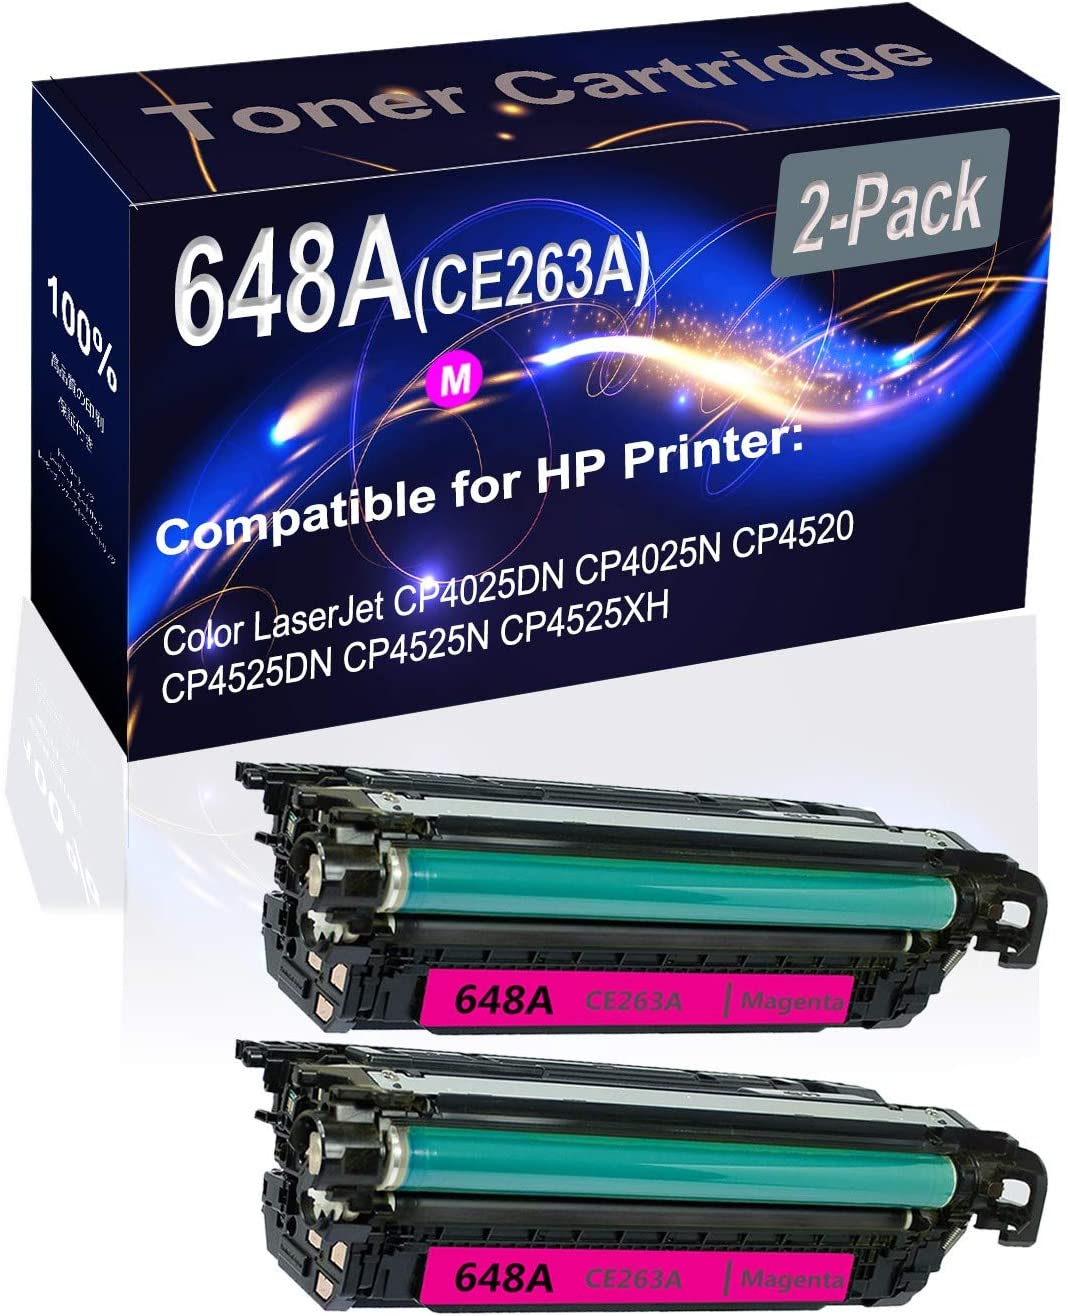 2-Pack (Magenta) Compatible High Yield 648A (CE263A) Printer Toner Cartridge use for HP CP4025 CP4025dn Printers